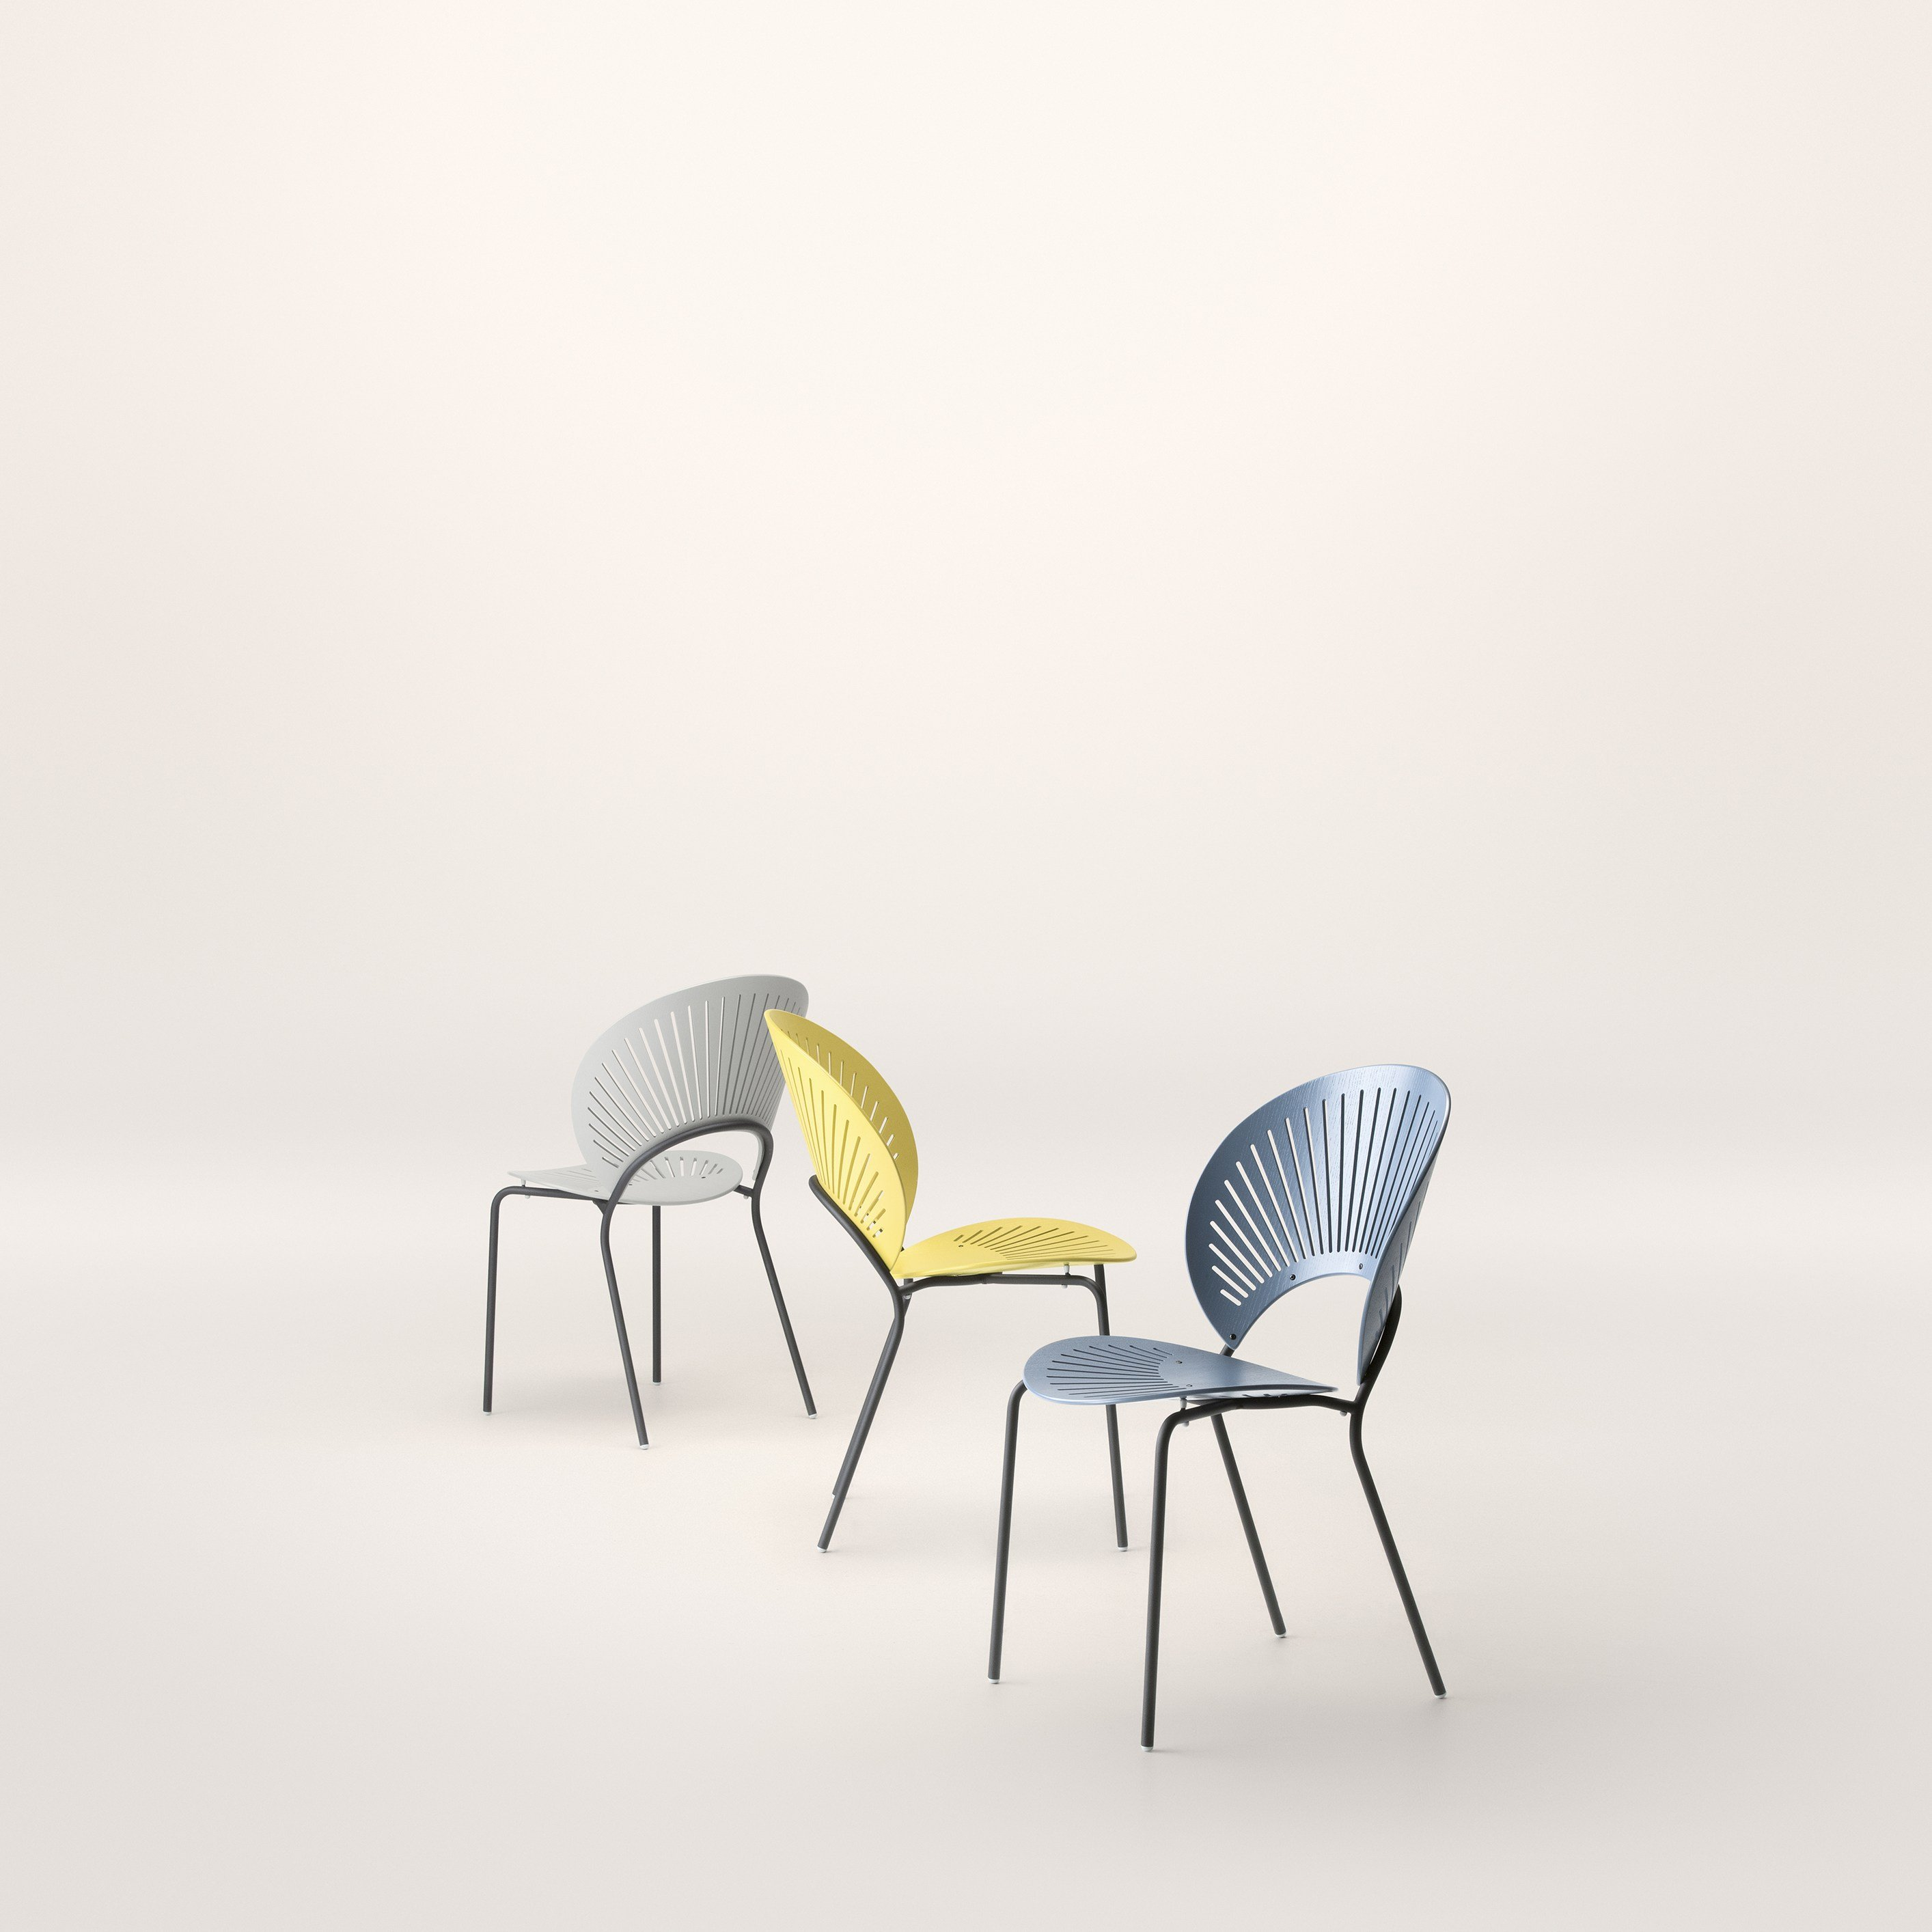 Marvelous photograph of TRINIDAD Chair by FREDERICIA FURNITURE design Nanna Ditzel with #A59026 color and 2828x2828 pixels